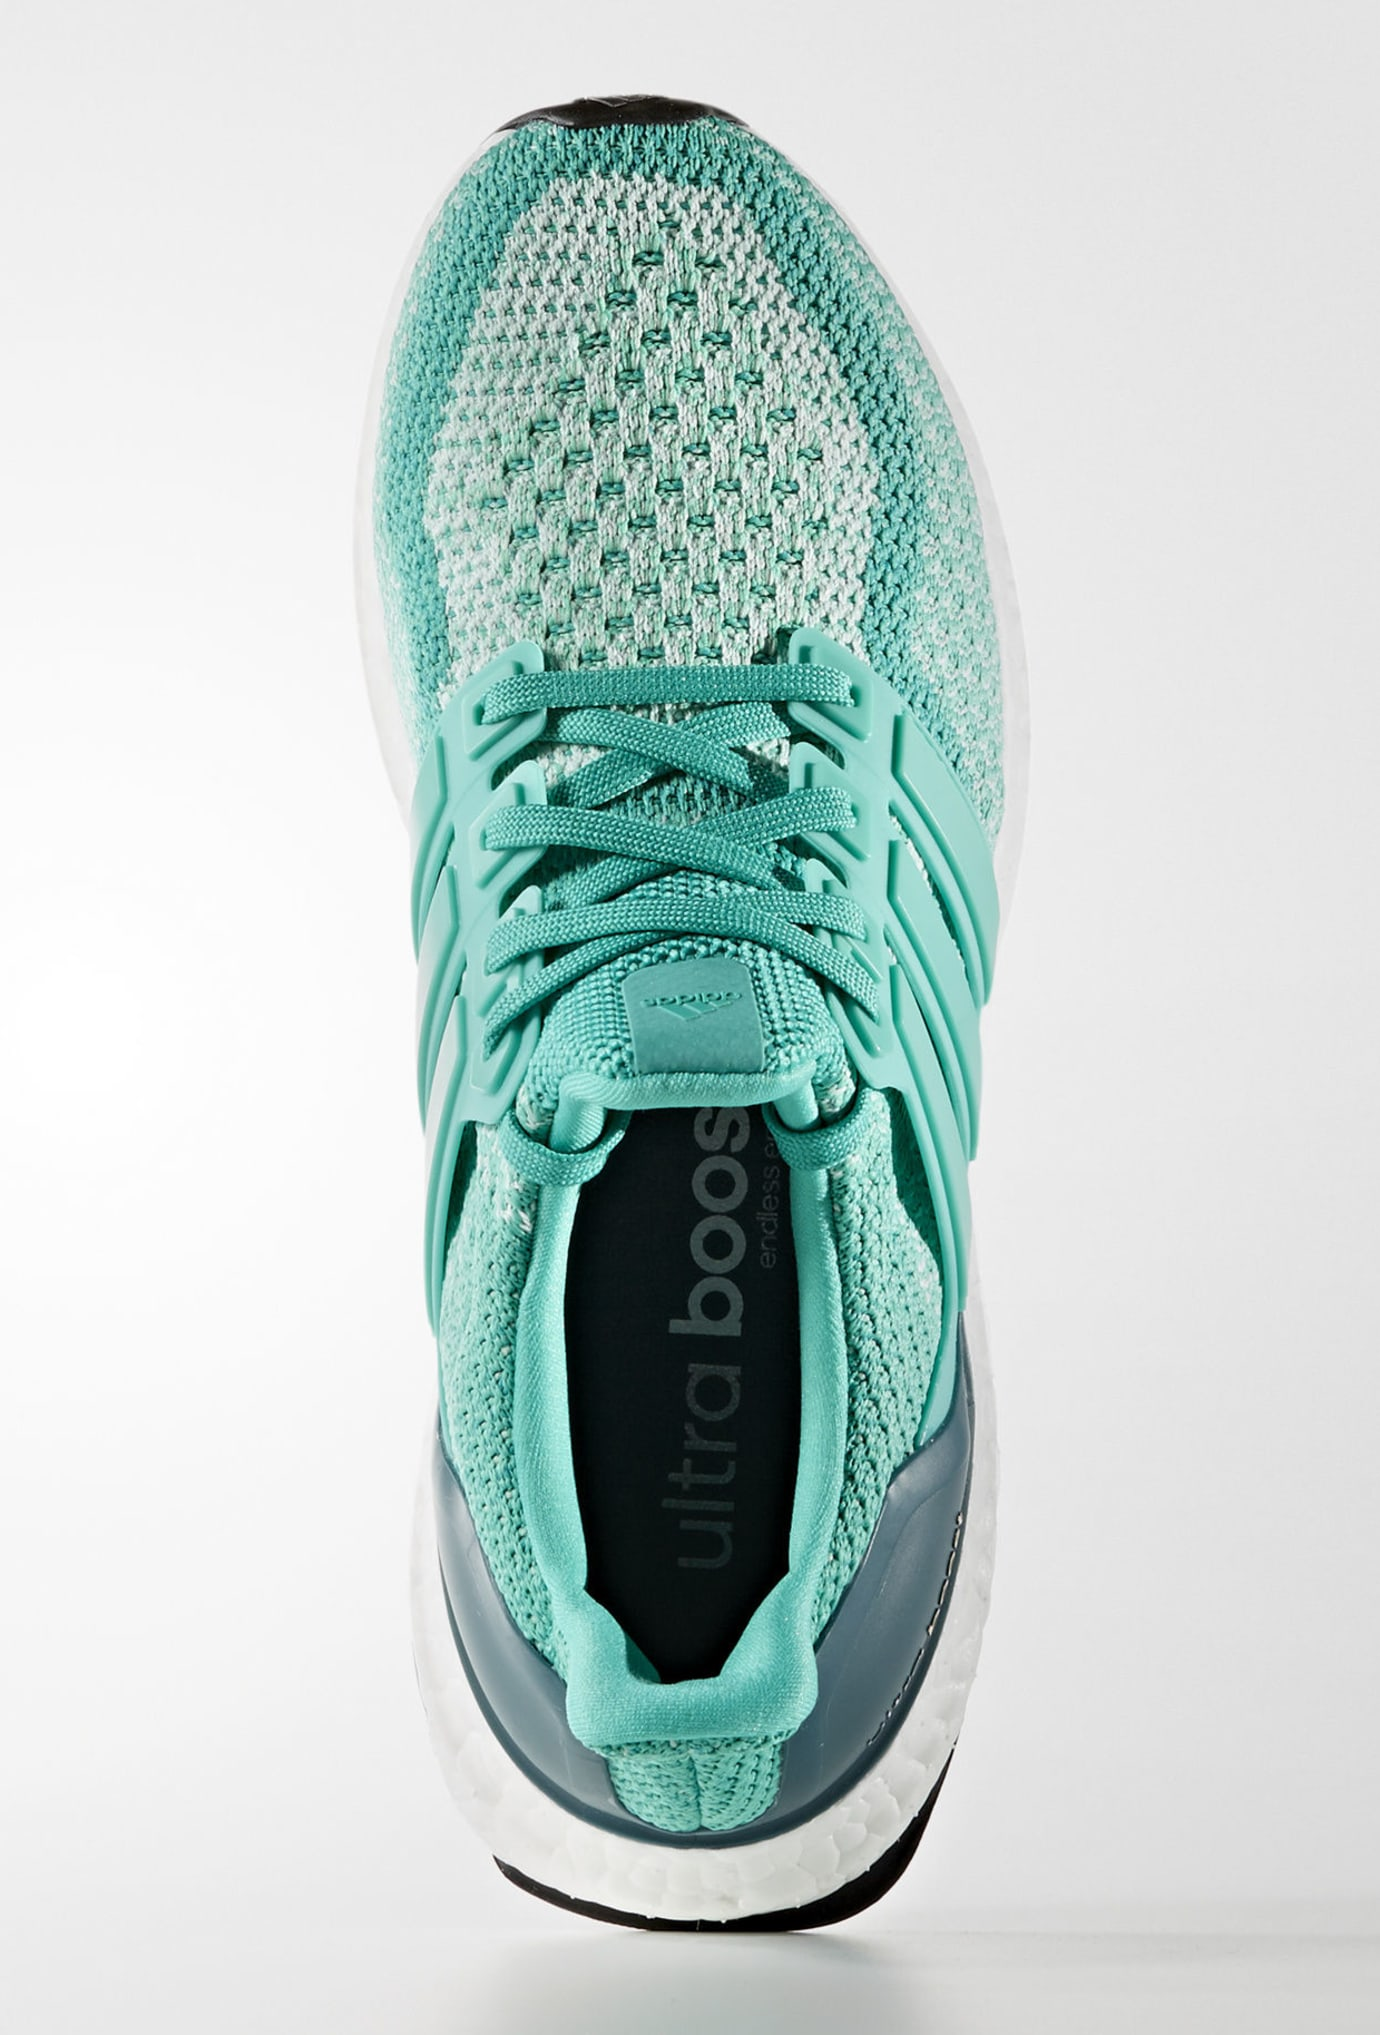 outlet store cb6ff 866f0 Image via Adidas adidas-womens-ultra-boost-2-0-shock-mint-